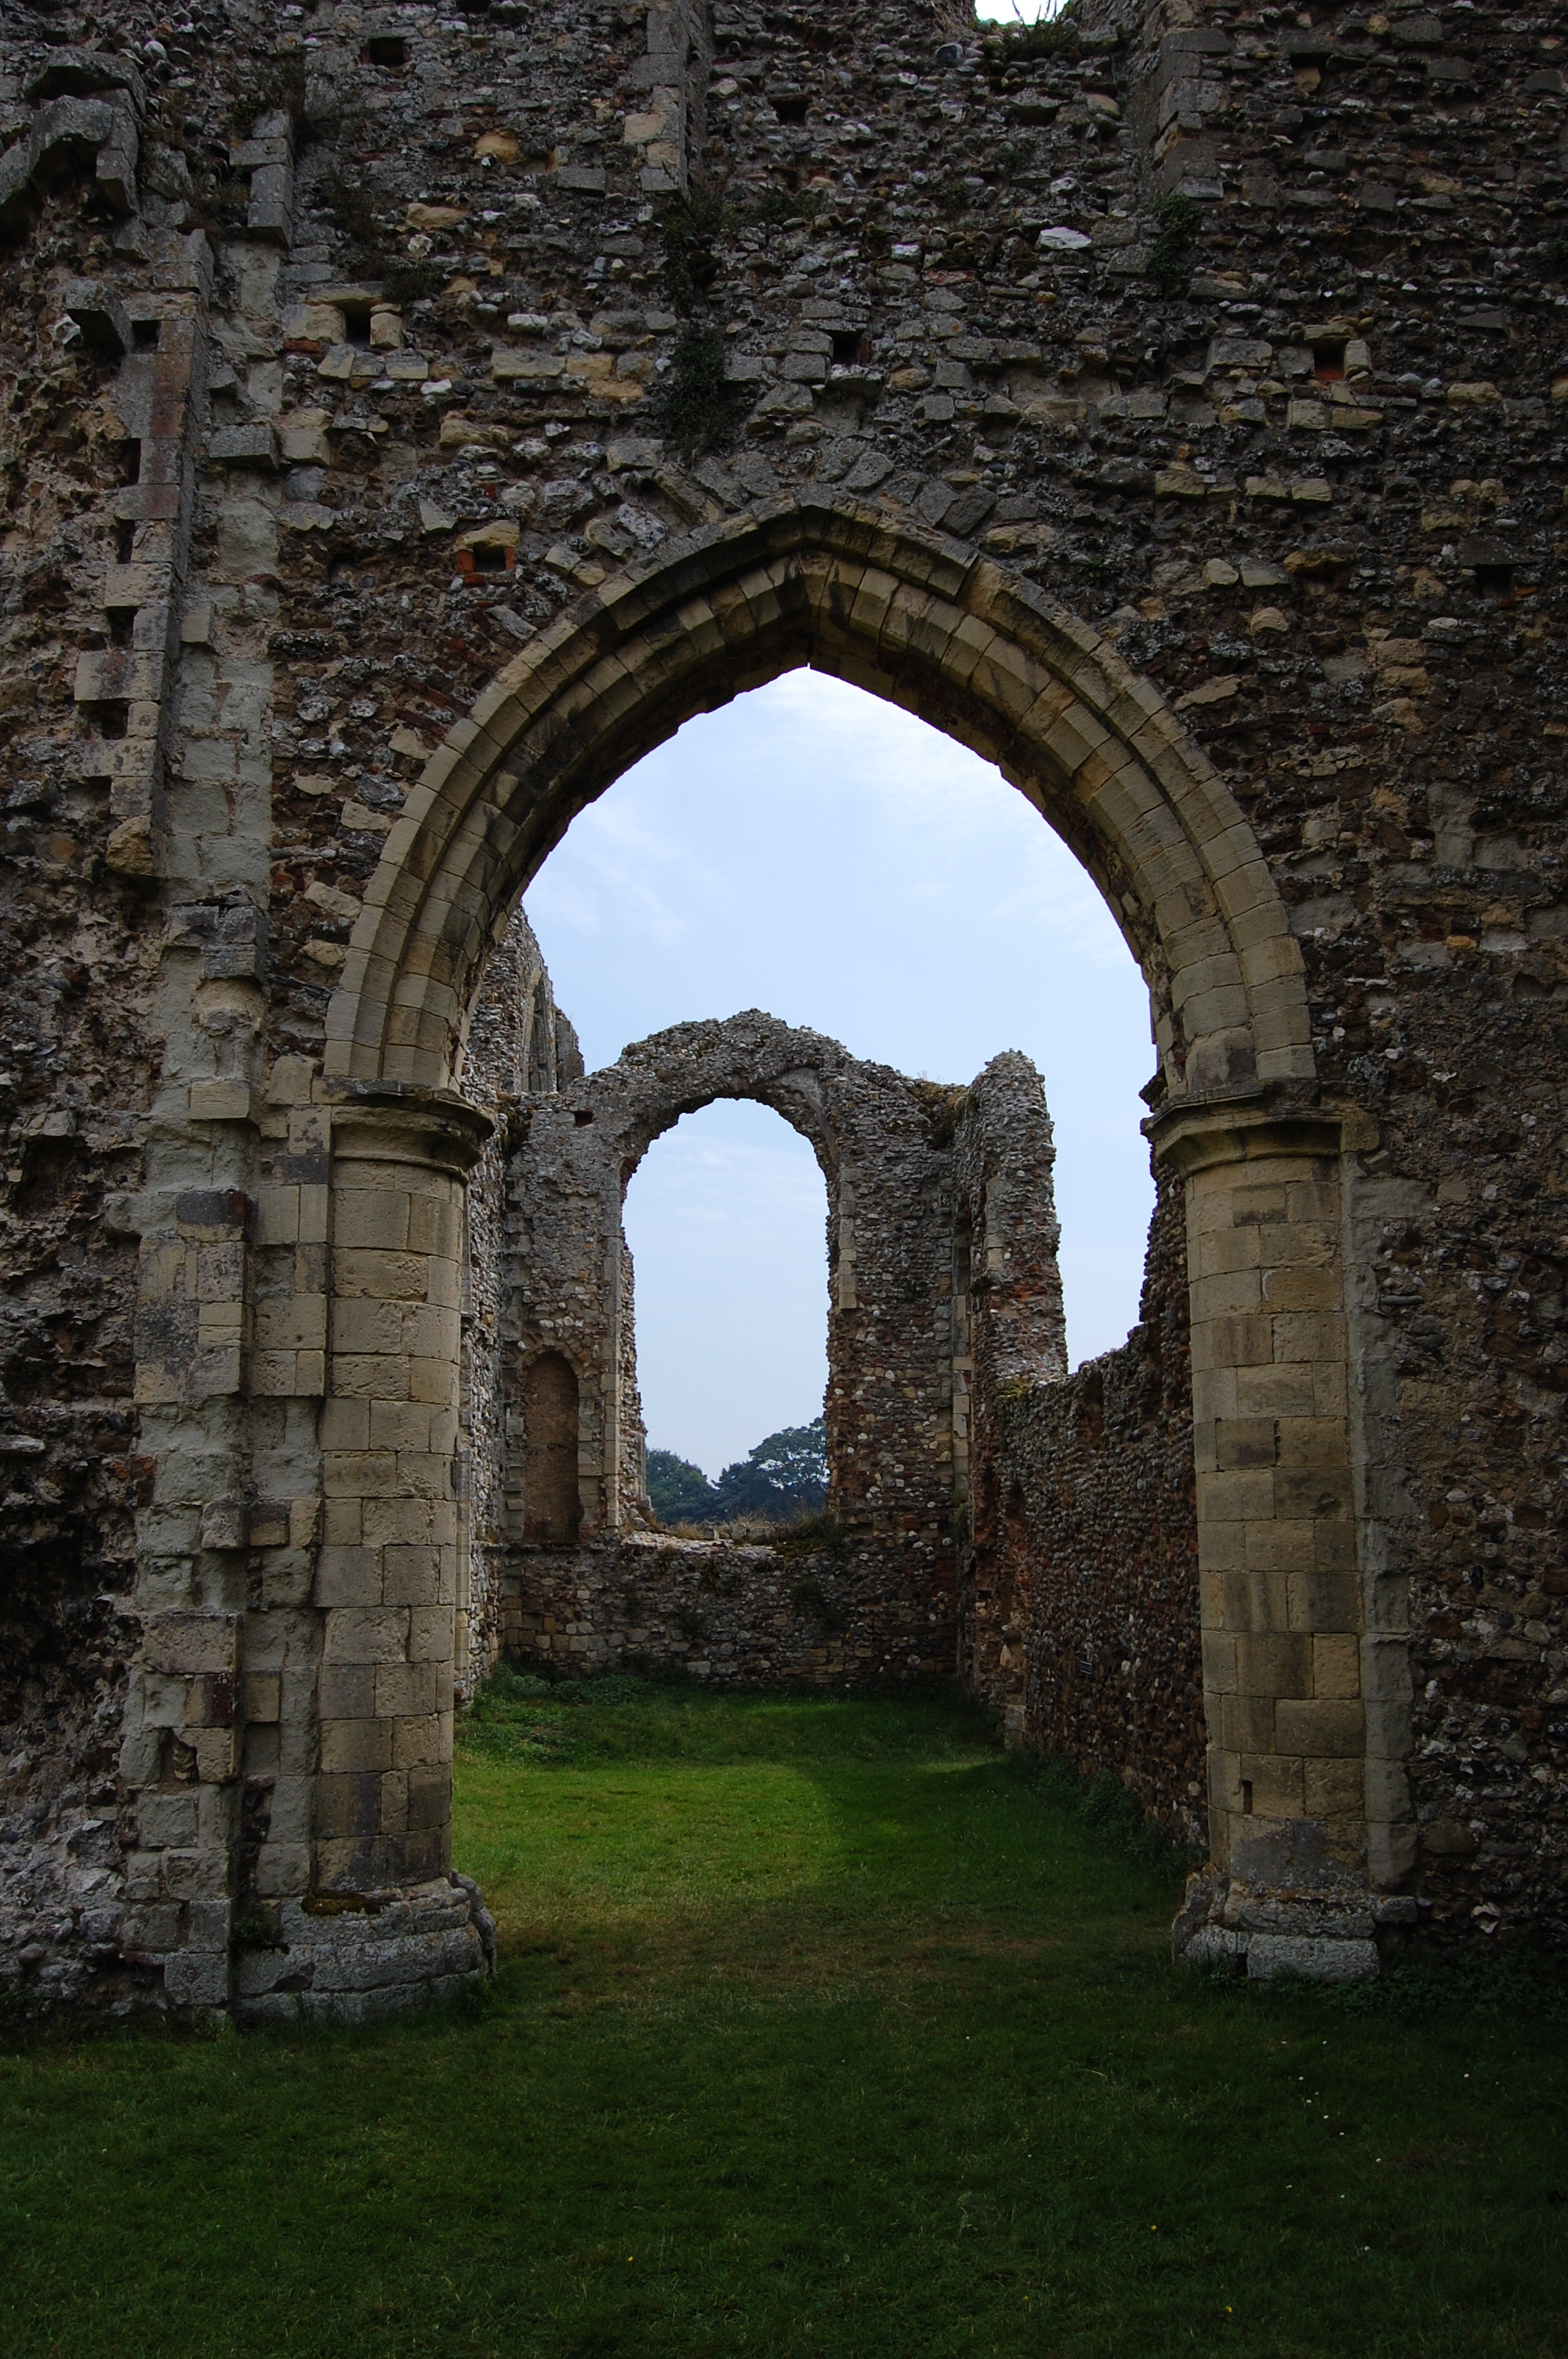 By Dave Briggs (originally posted to Flickr as Leiston Abbey) [CC BY-SA 2.0 (http://creativecommons.org/licenses/by-sa/2.0)], via Wikimedia Commons